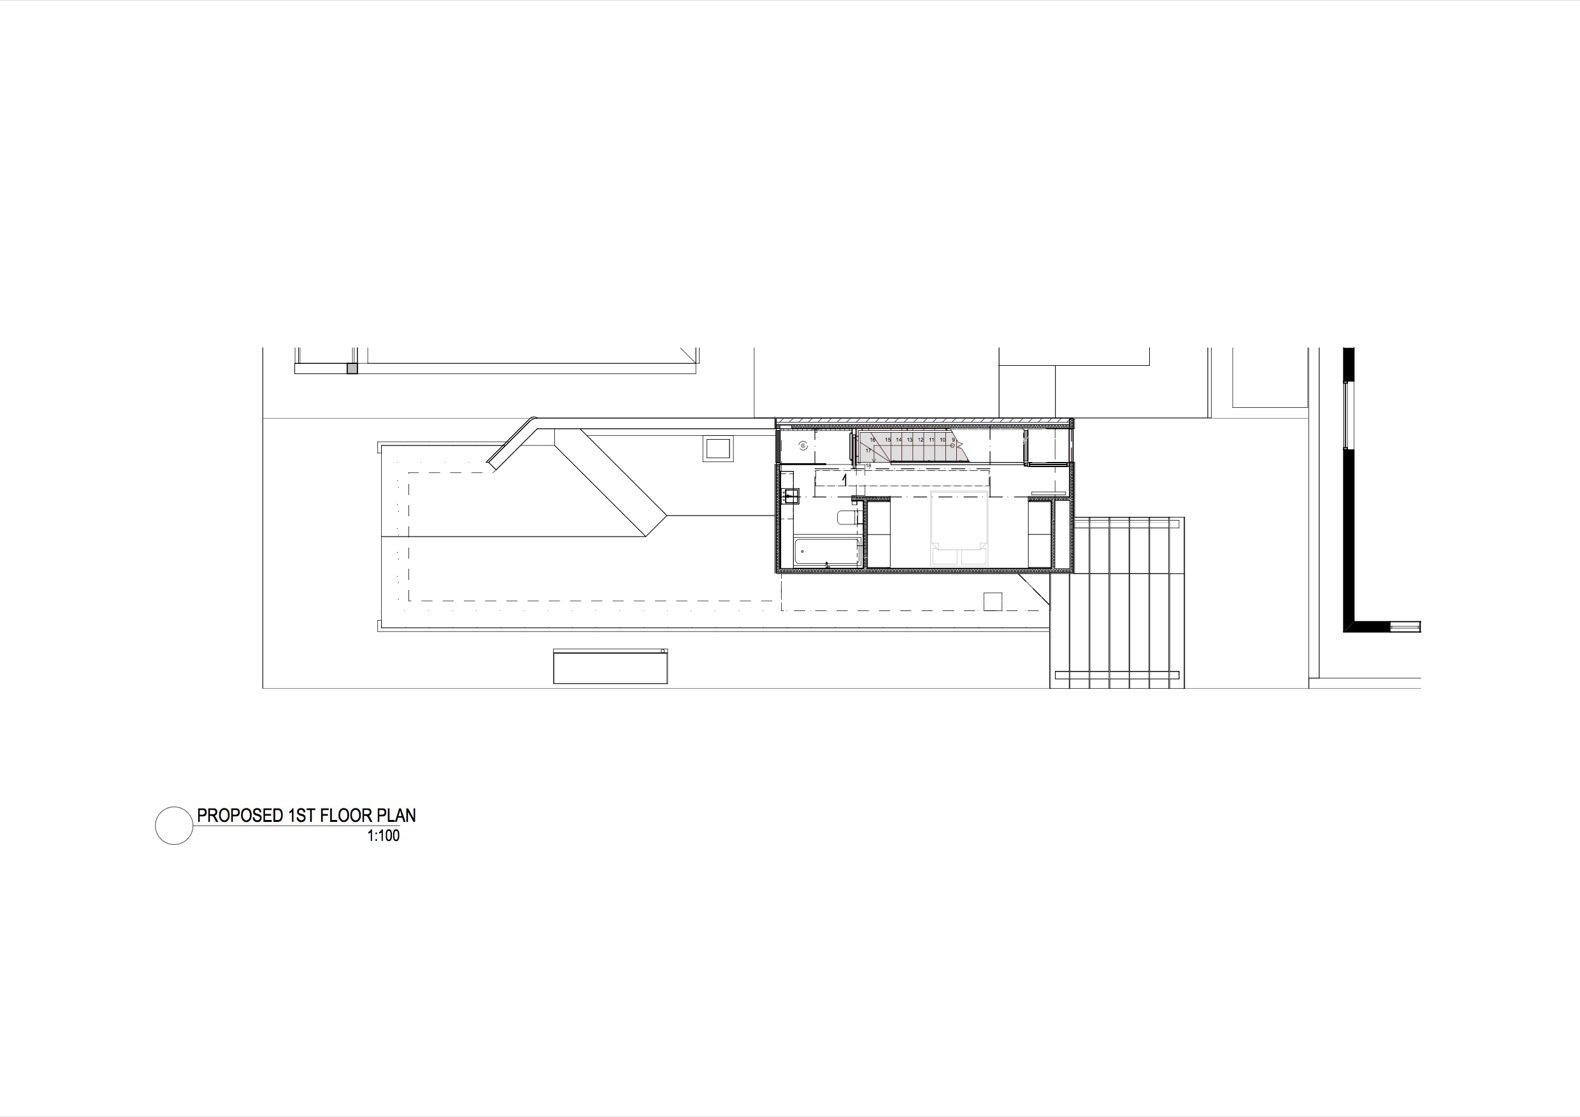 The Shadow House first floor plan  Photo 16 of 16 in An Art Deco Dwelling Receives a Sleek, Contemporary Extension